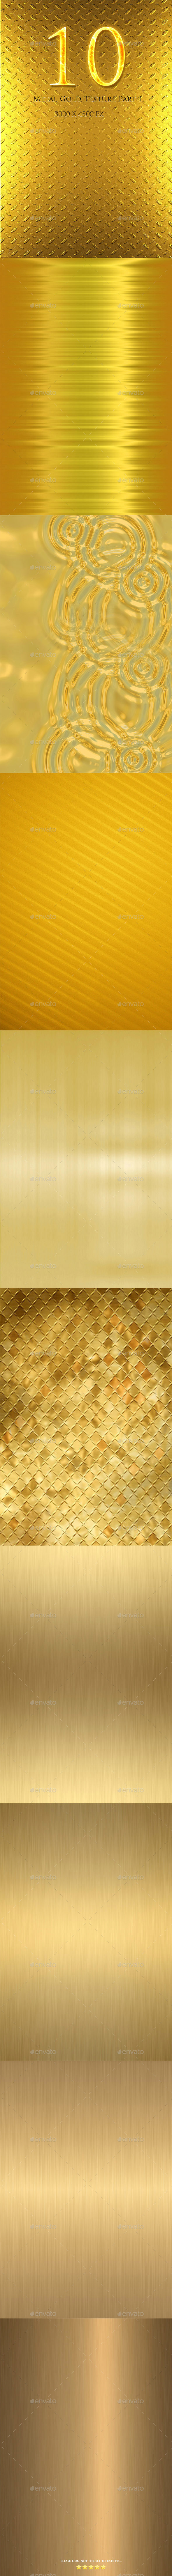 10 Metal Gold Texture Part 1 - Abstract Textures